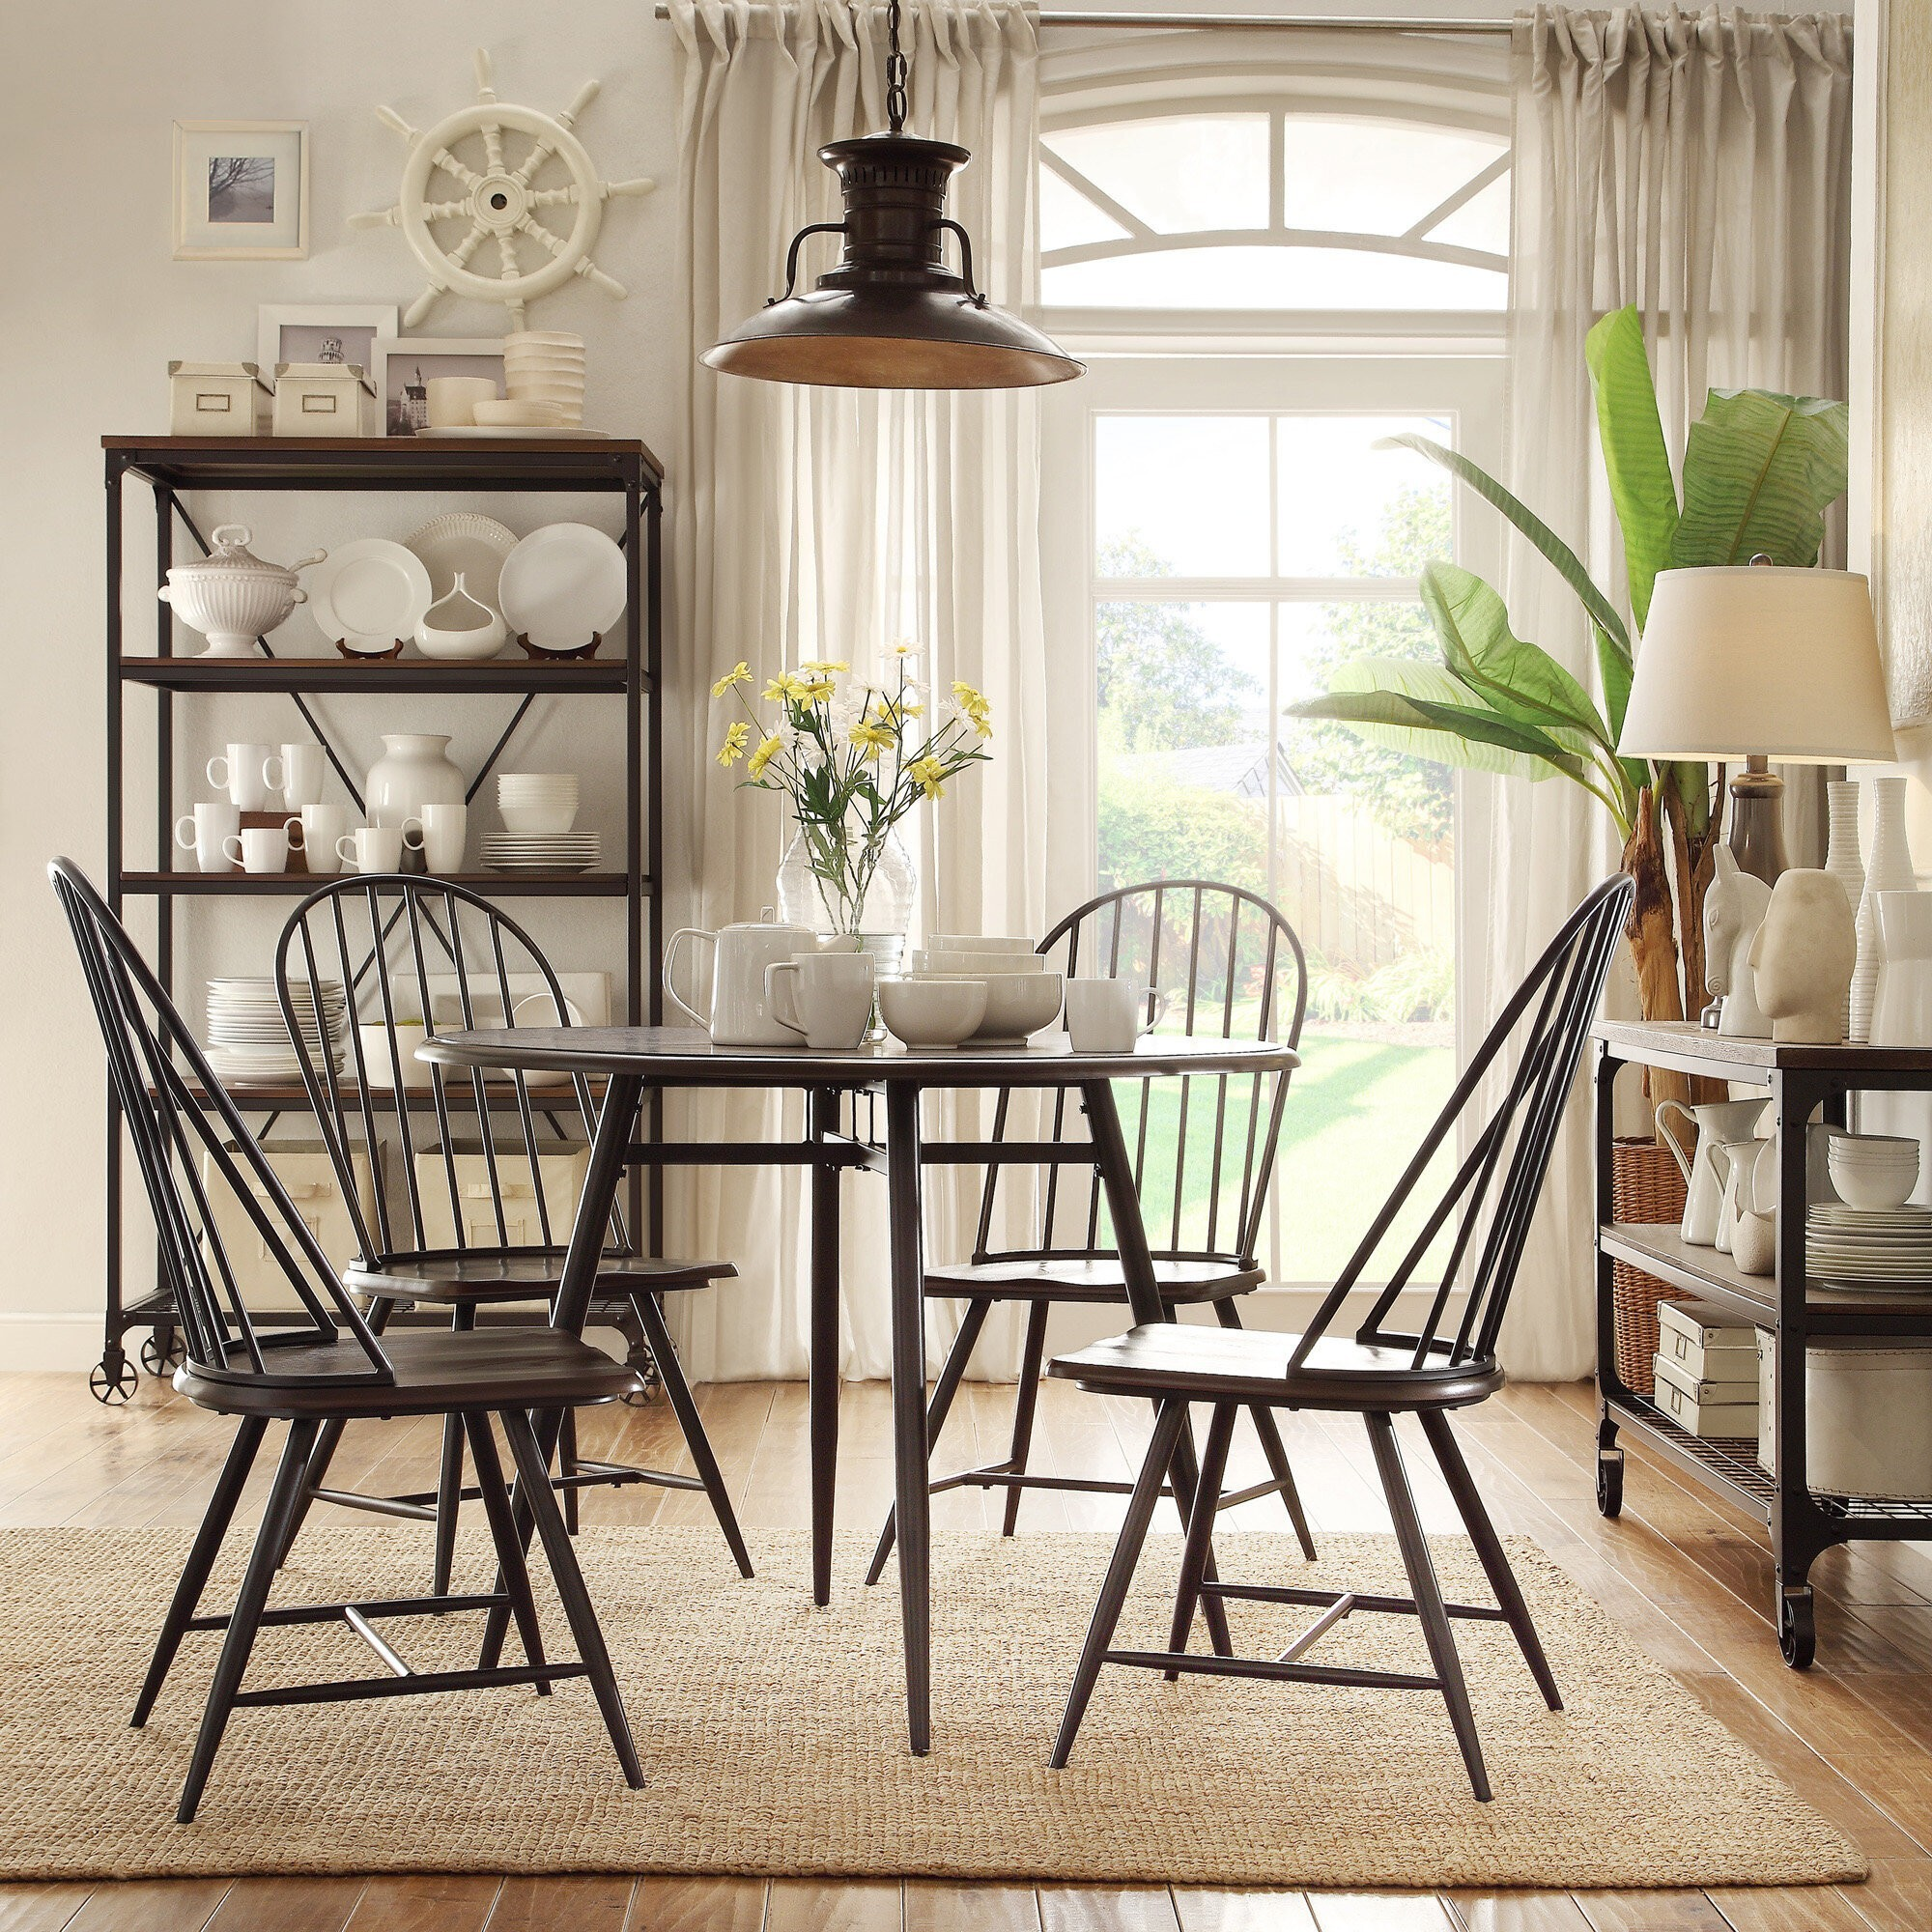 How To Choose A Kitchen And Dining Room Set